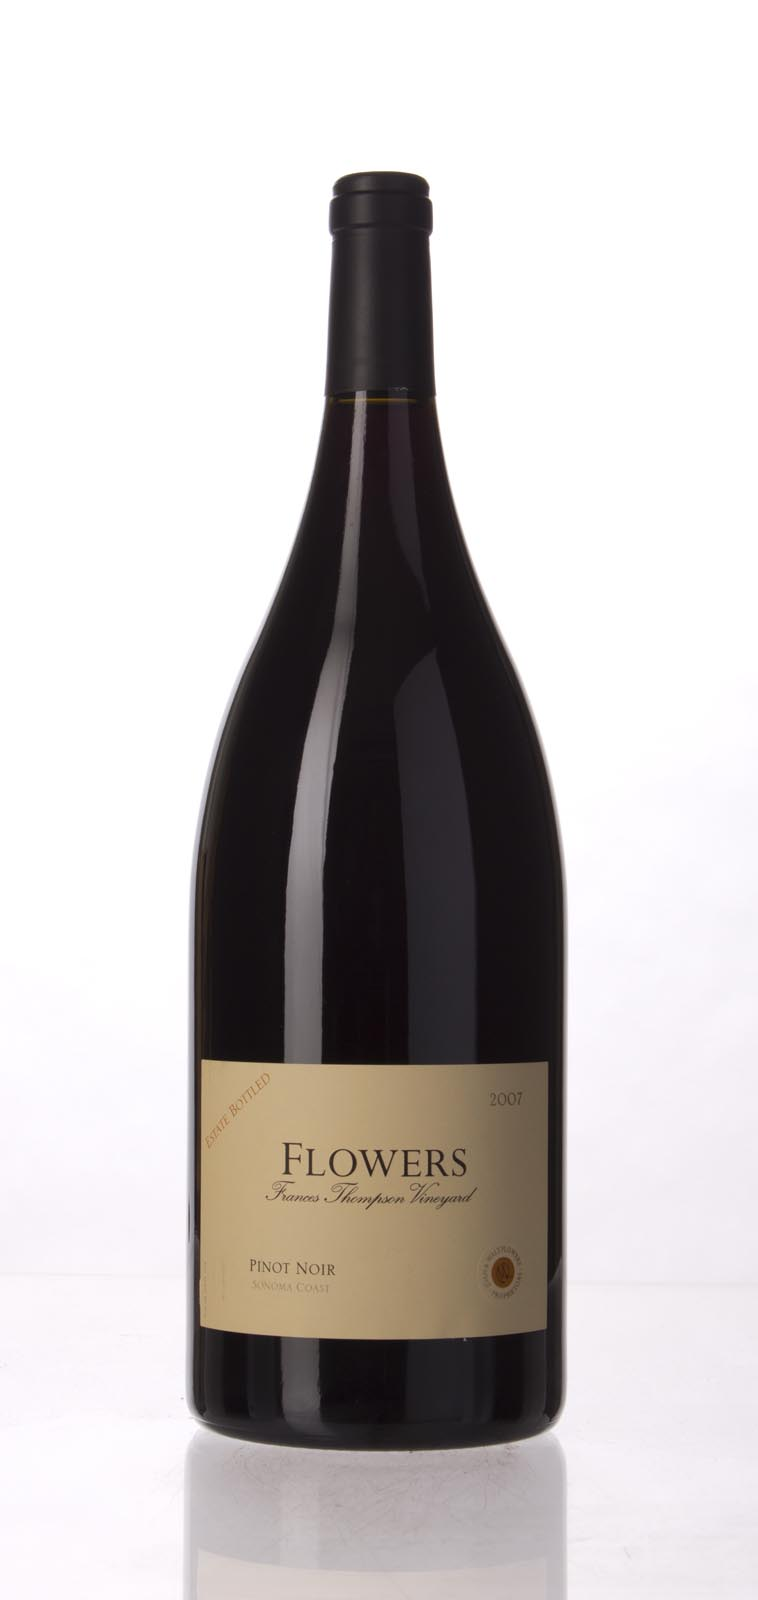 Flowers Pinot Noir Frances Thompson Vineyard 2007, 1.5L () from The BPW - Merchants of rare and fine wines.